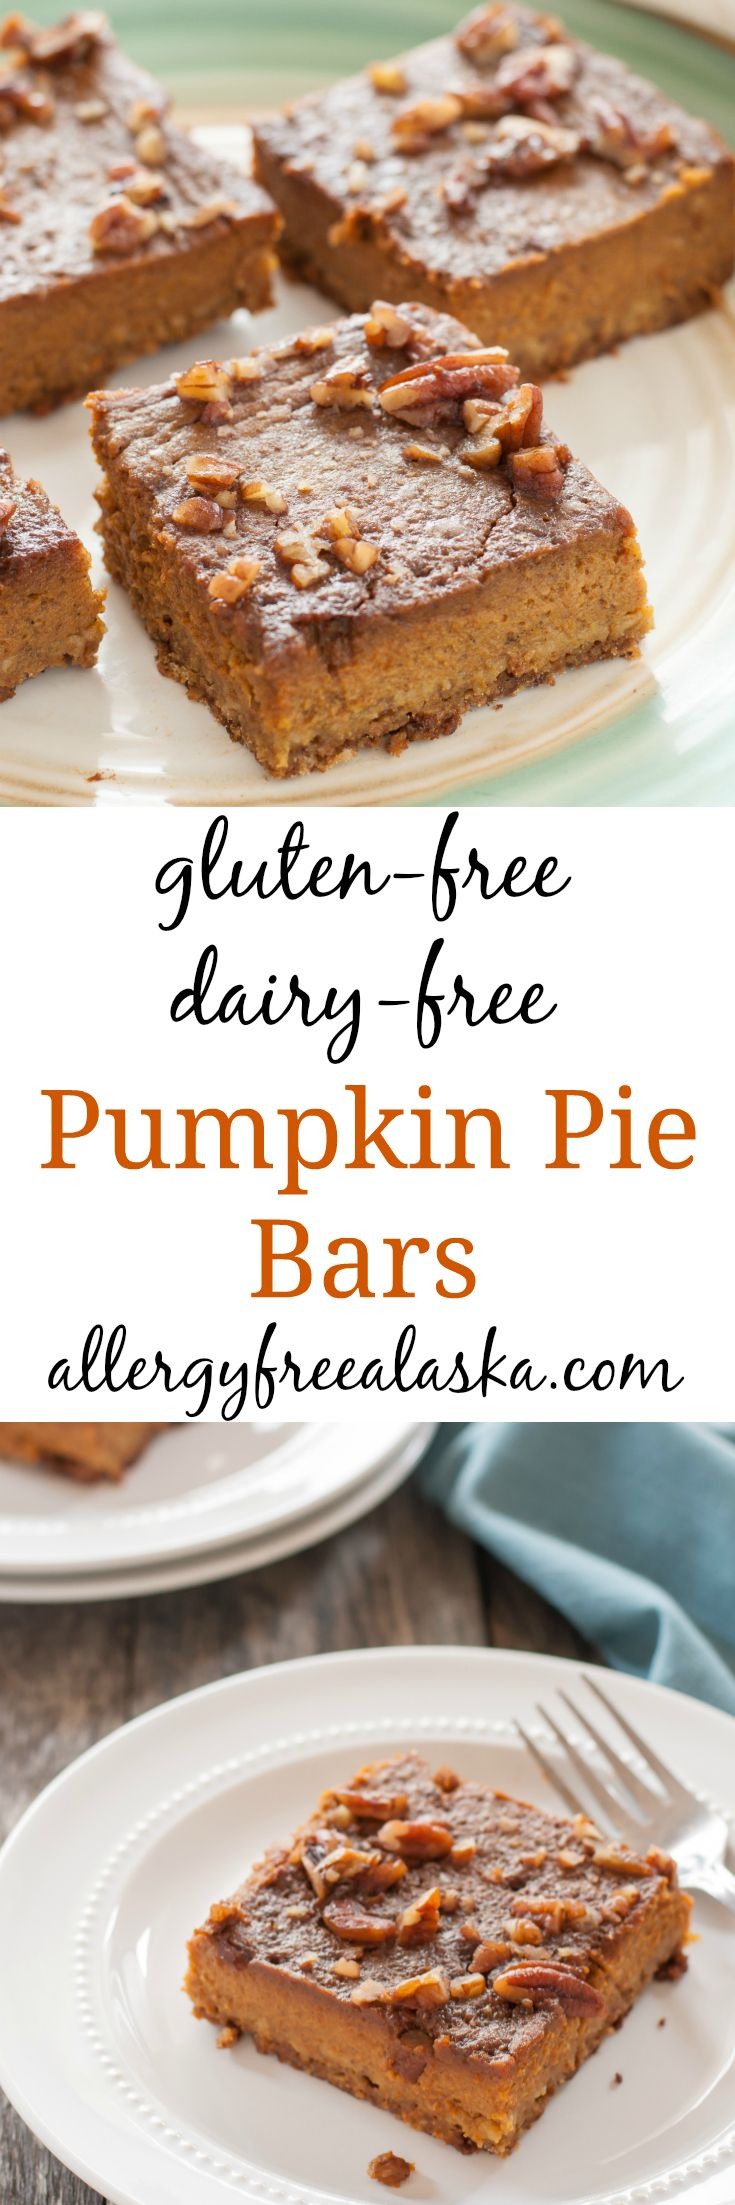 Gluten Free Dairy Free Pumpkin Pie Bars | Recipe ...